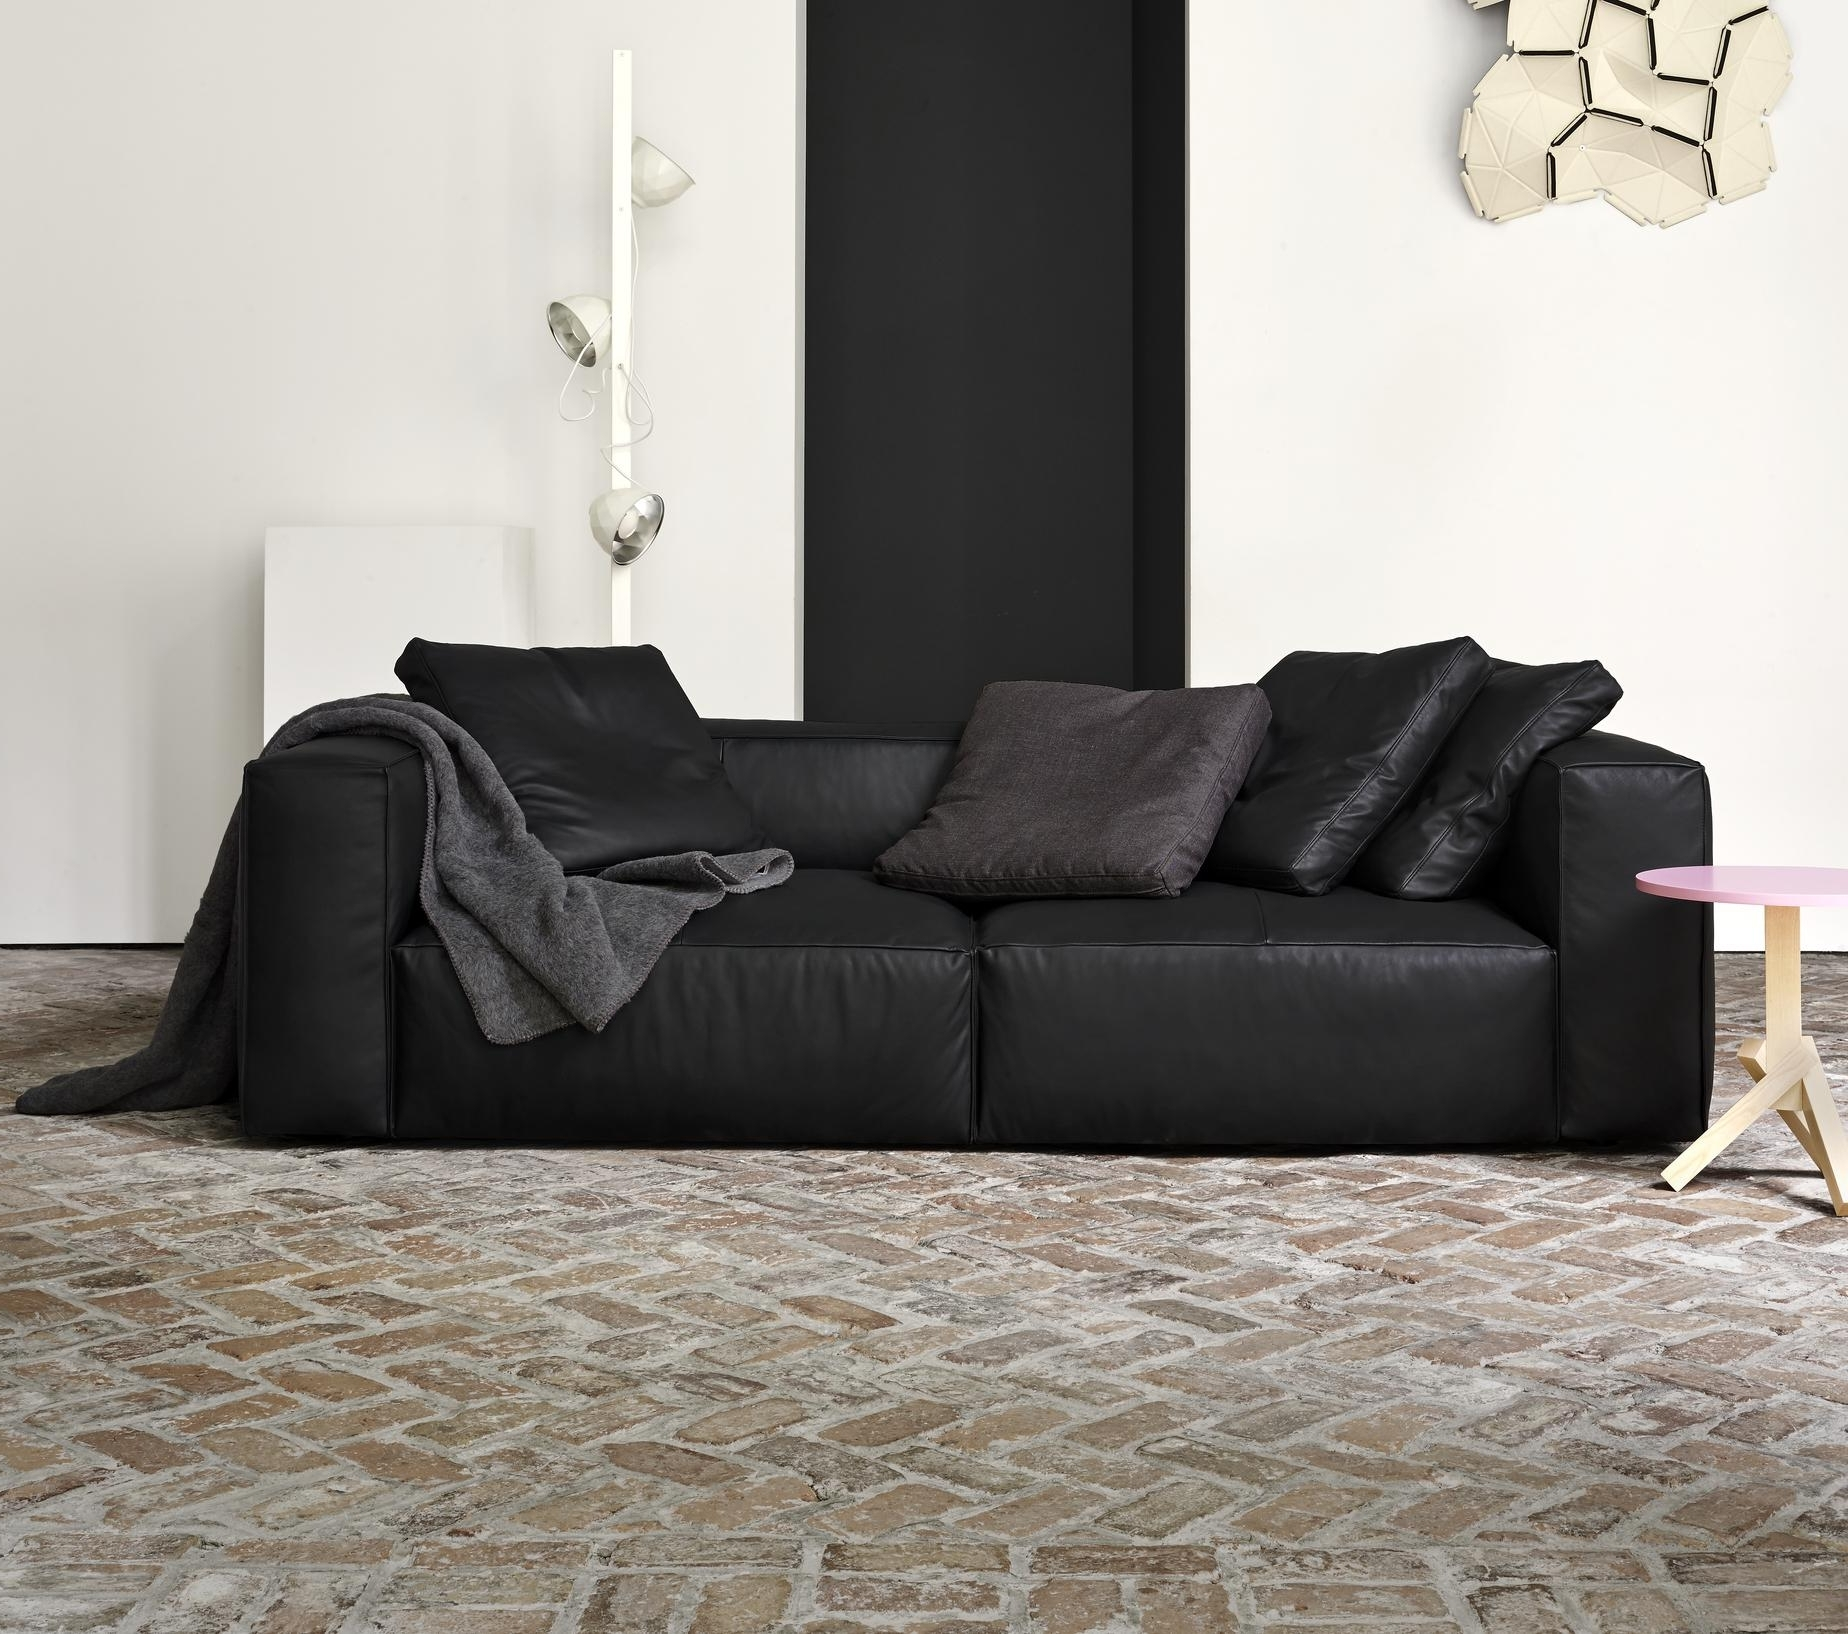 Current Newfoundland Sectional Sofas In Nils, Sofas Designer : Didier Gomez (View 5 of 20)